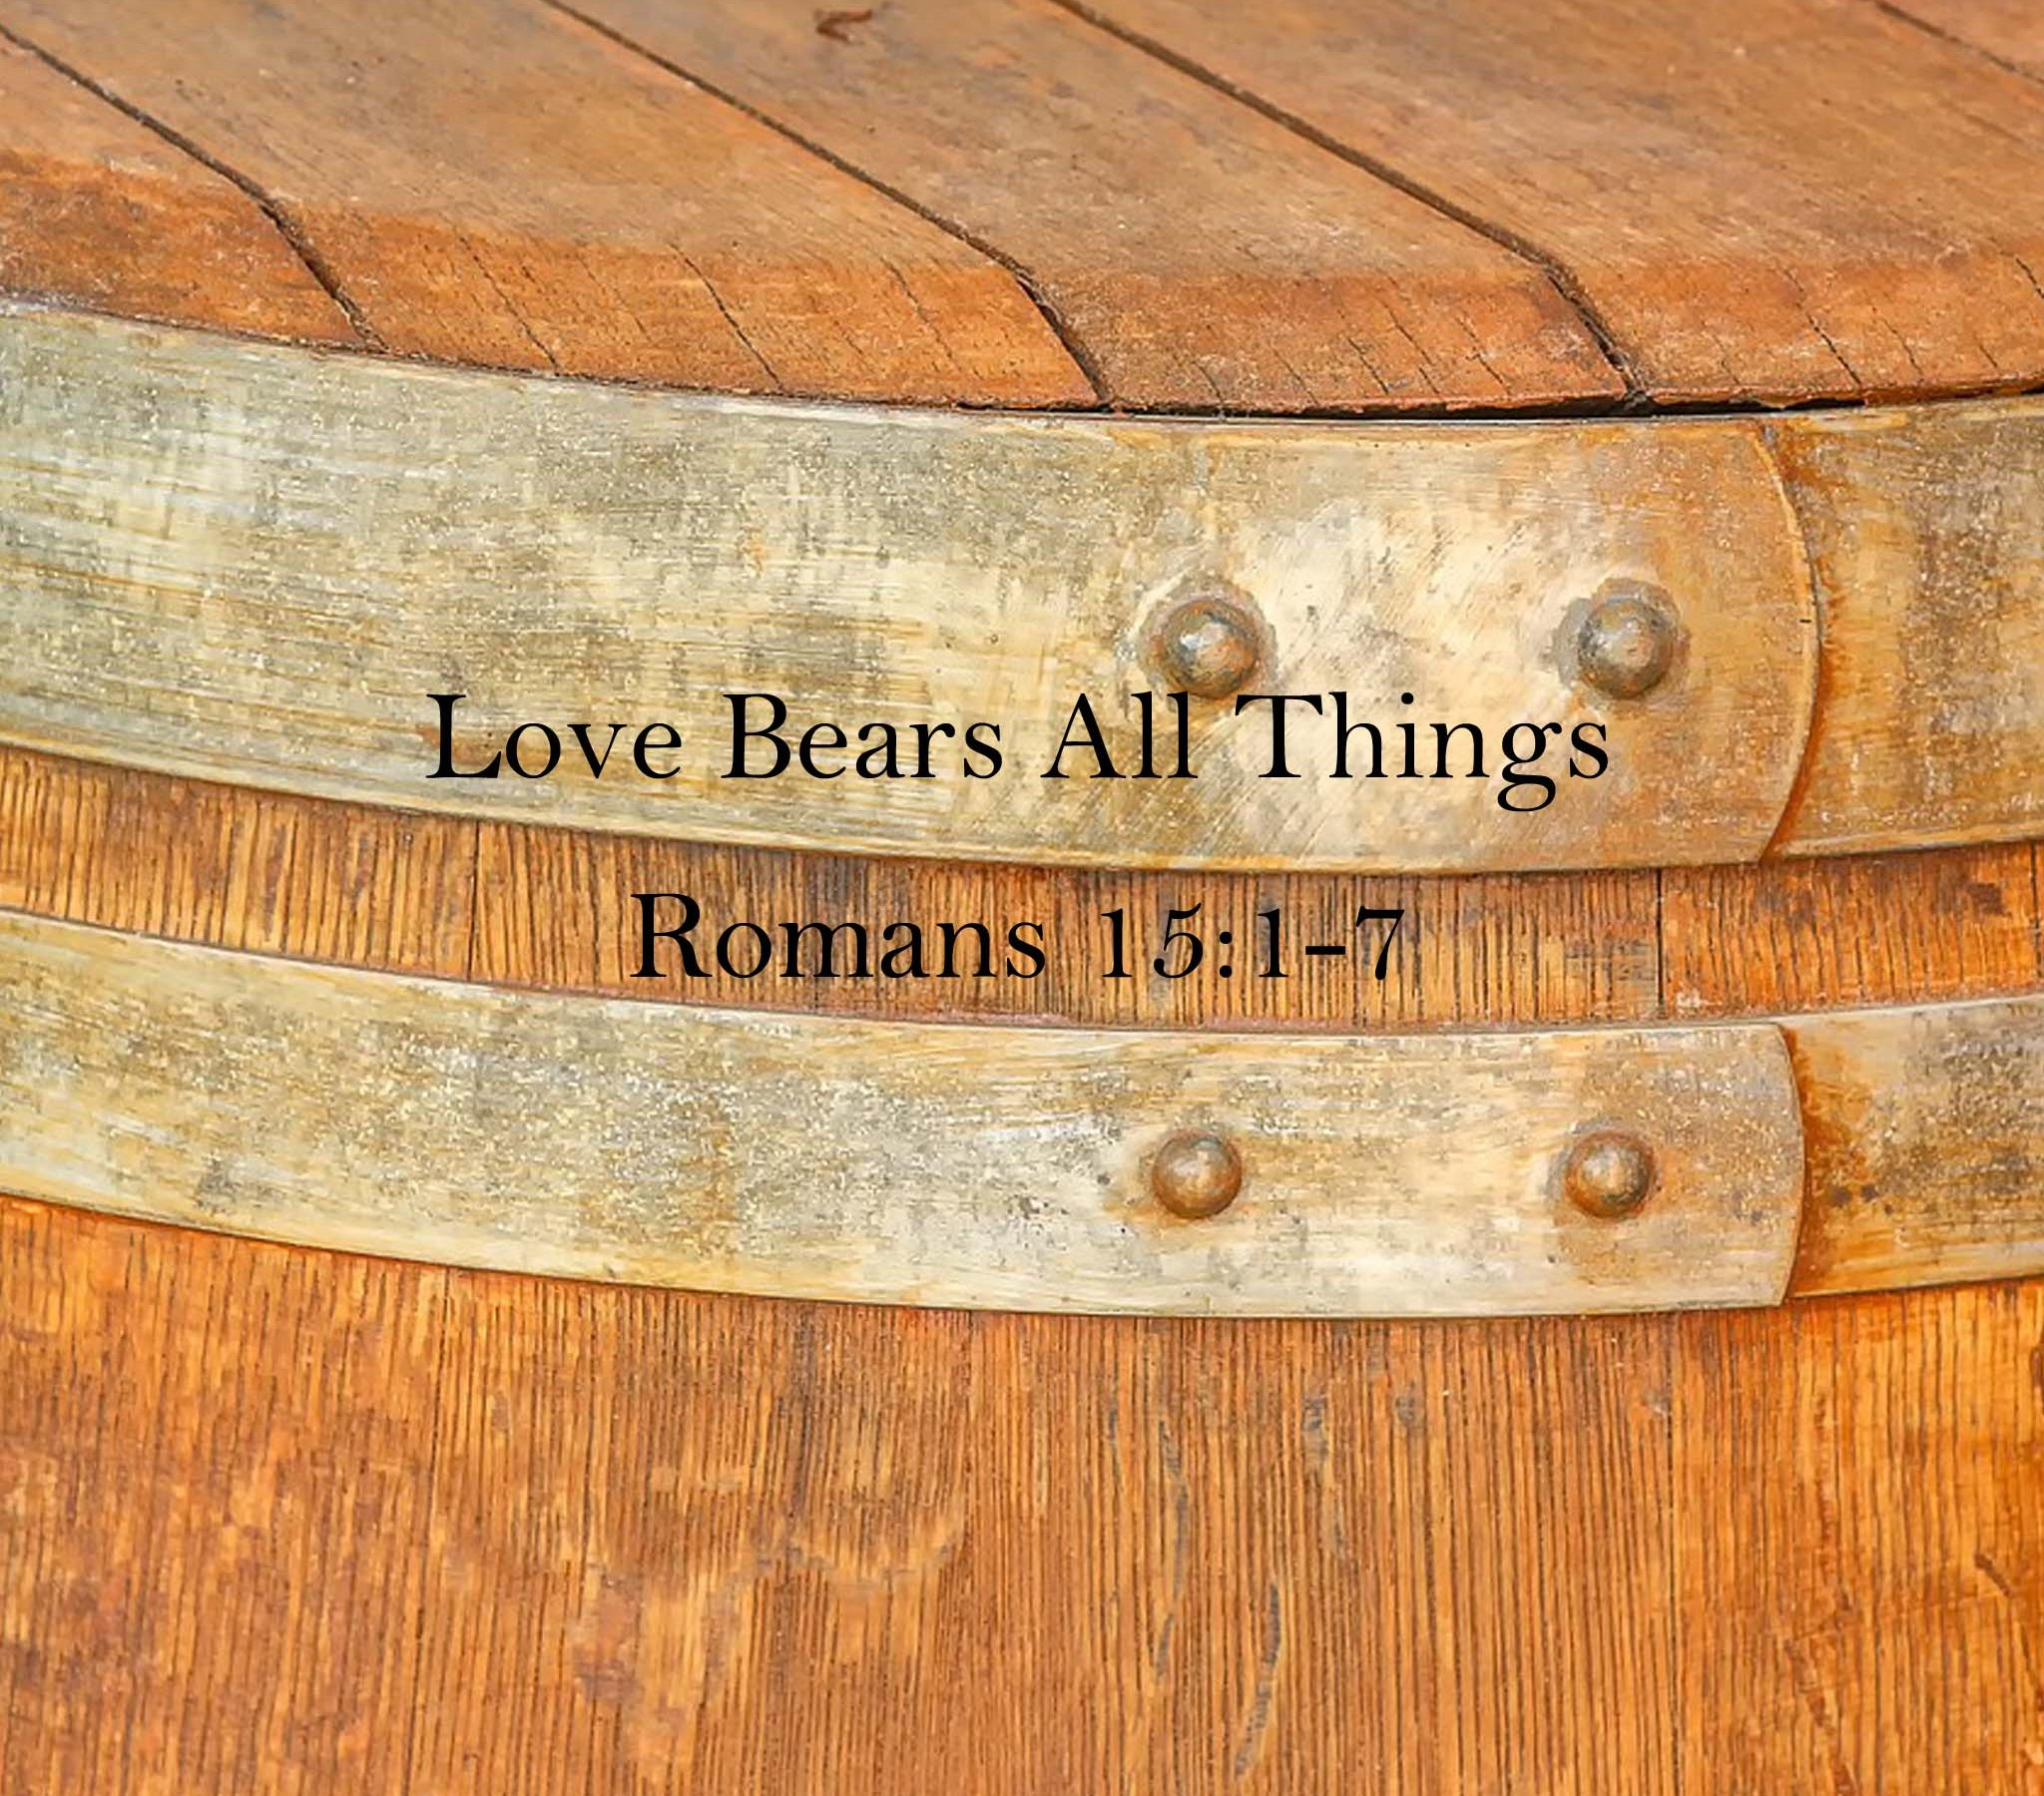 Sermon: Love Bears All Things Romans 15:1-7